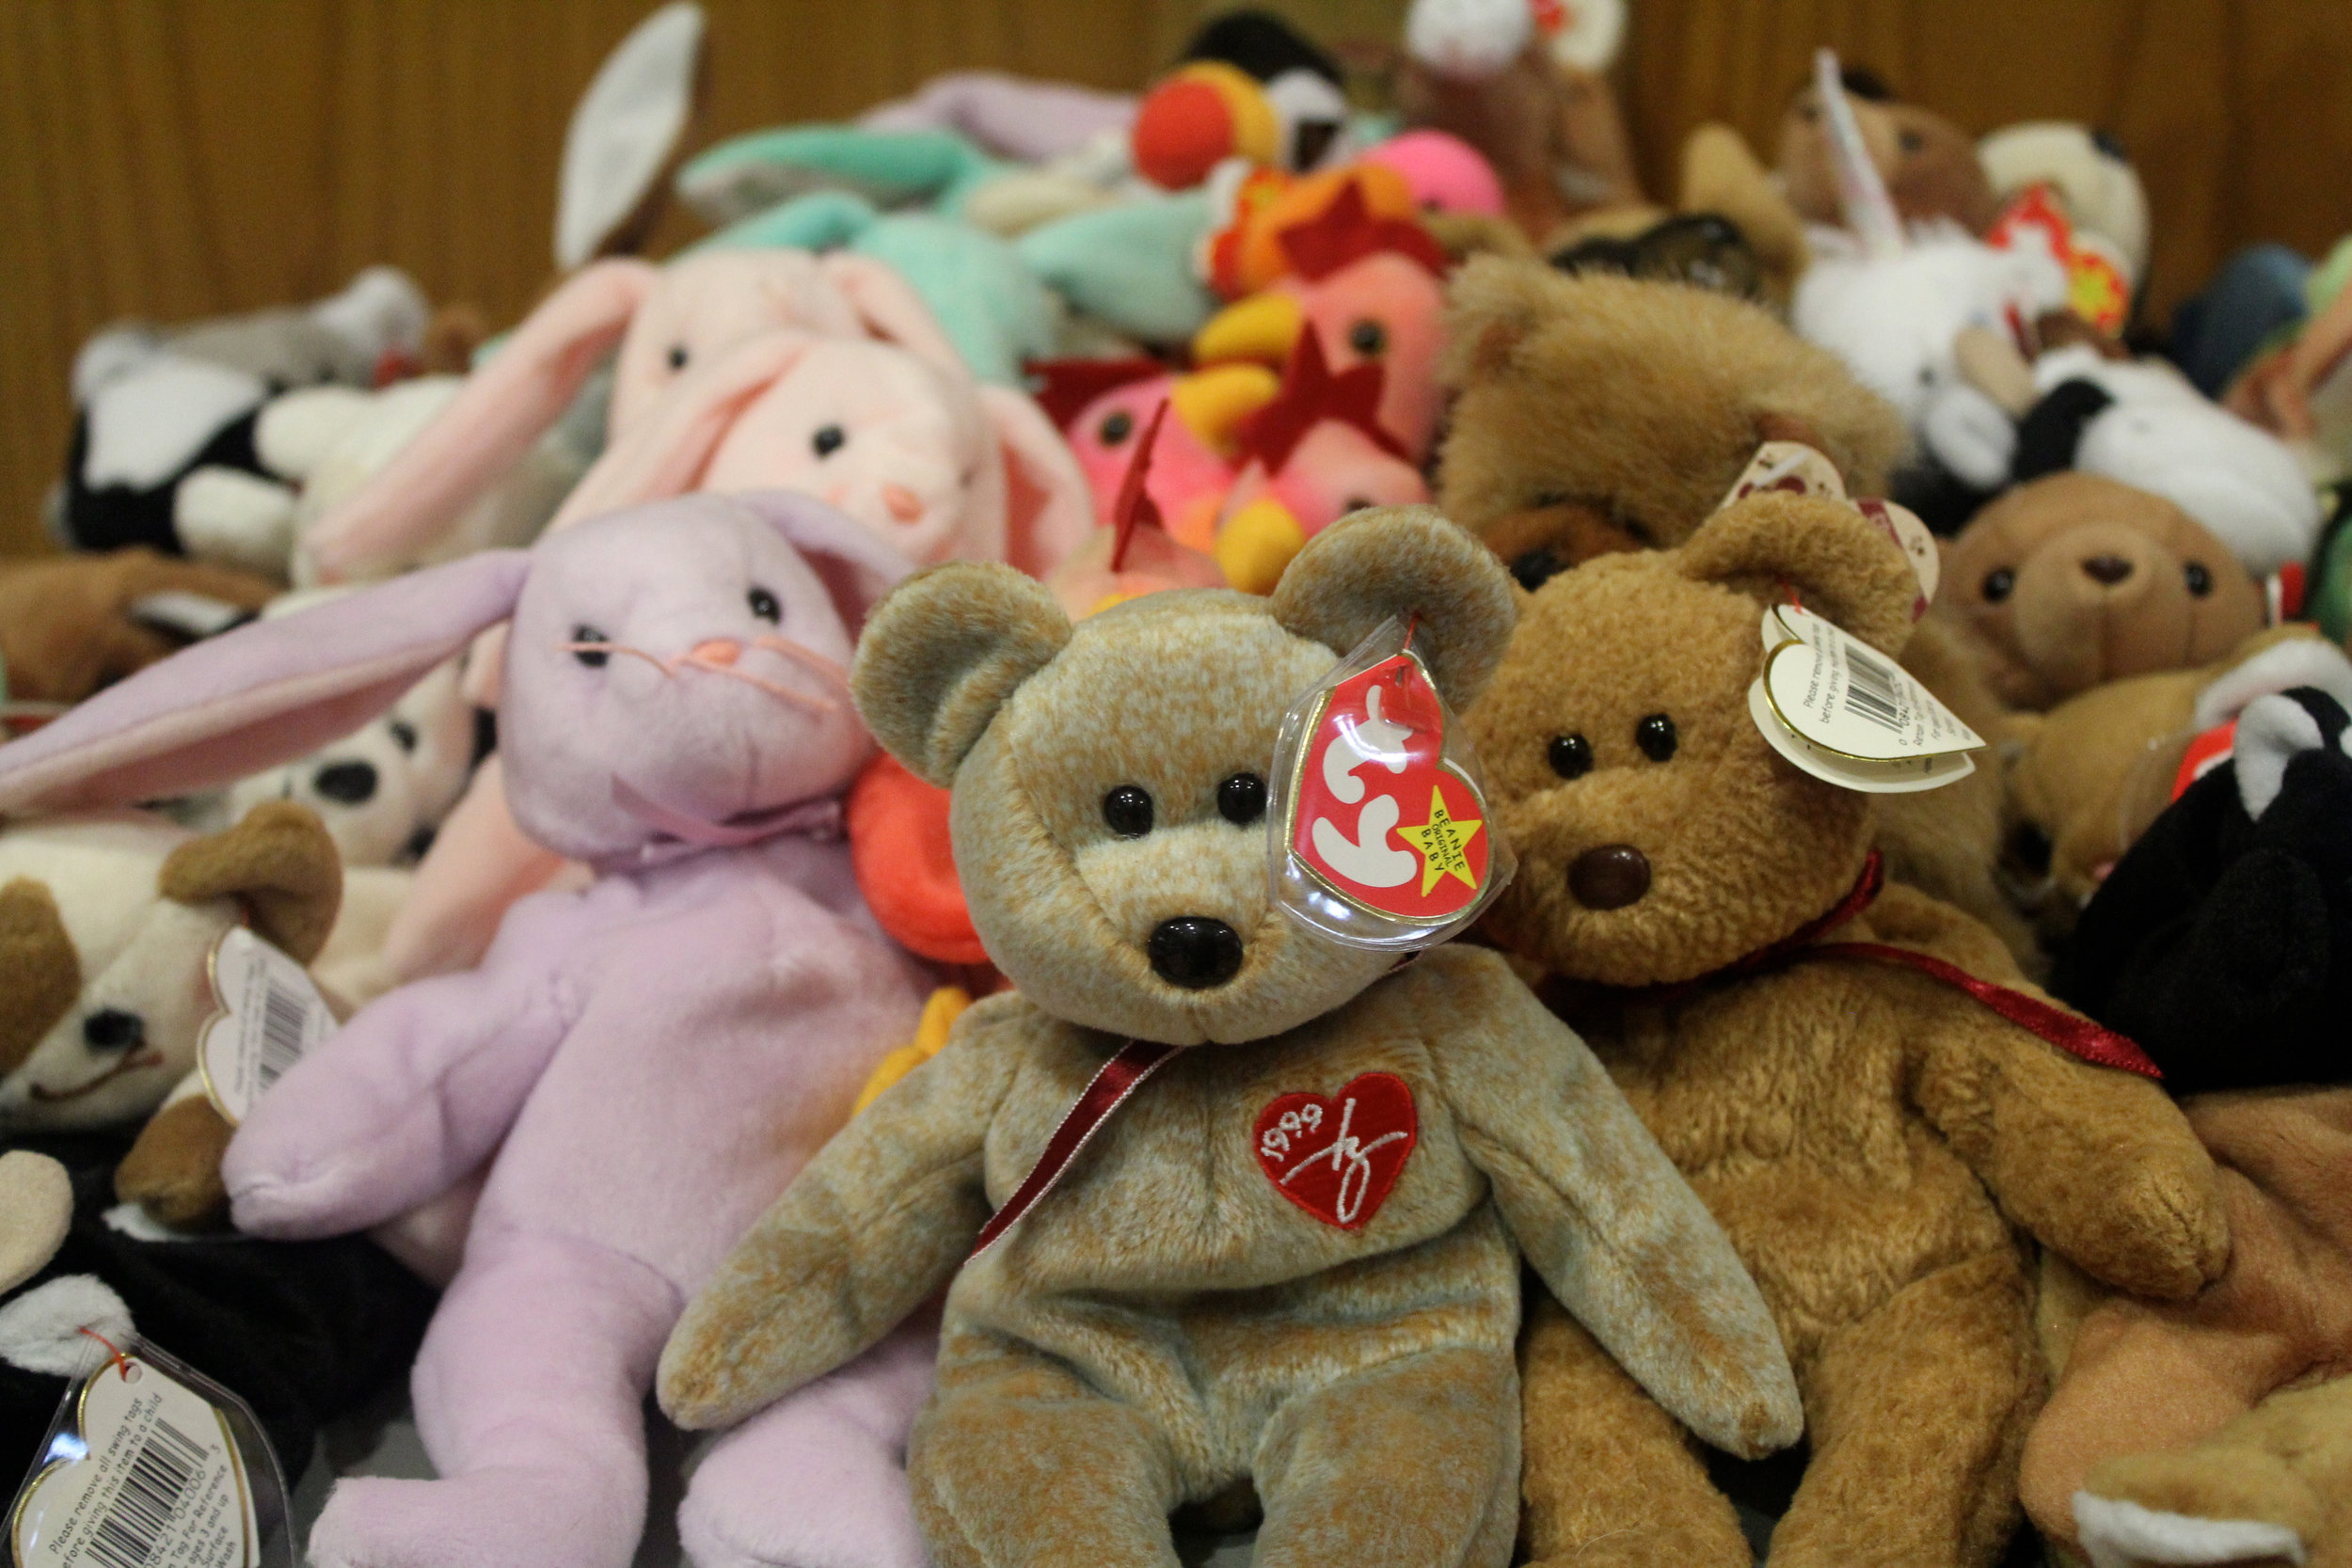 If you have Beanie Baby collections or friends with collections they are graciously always accepted. -